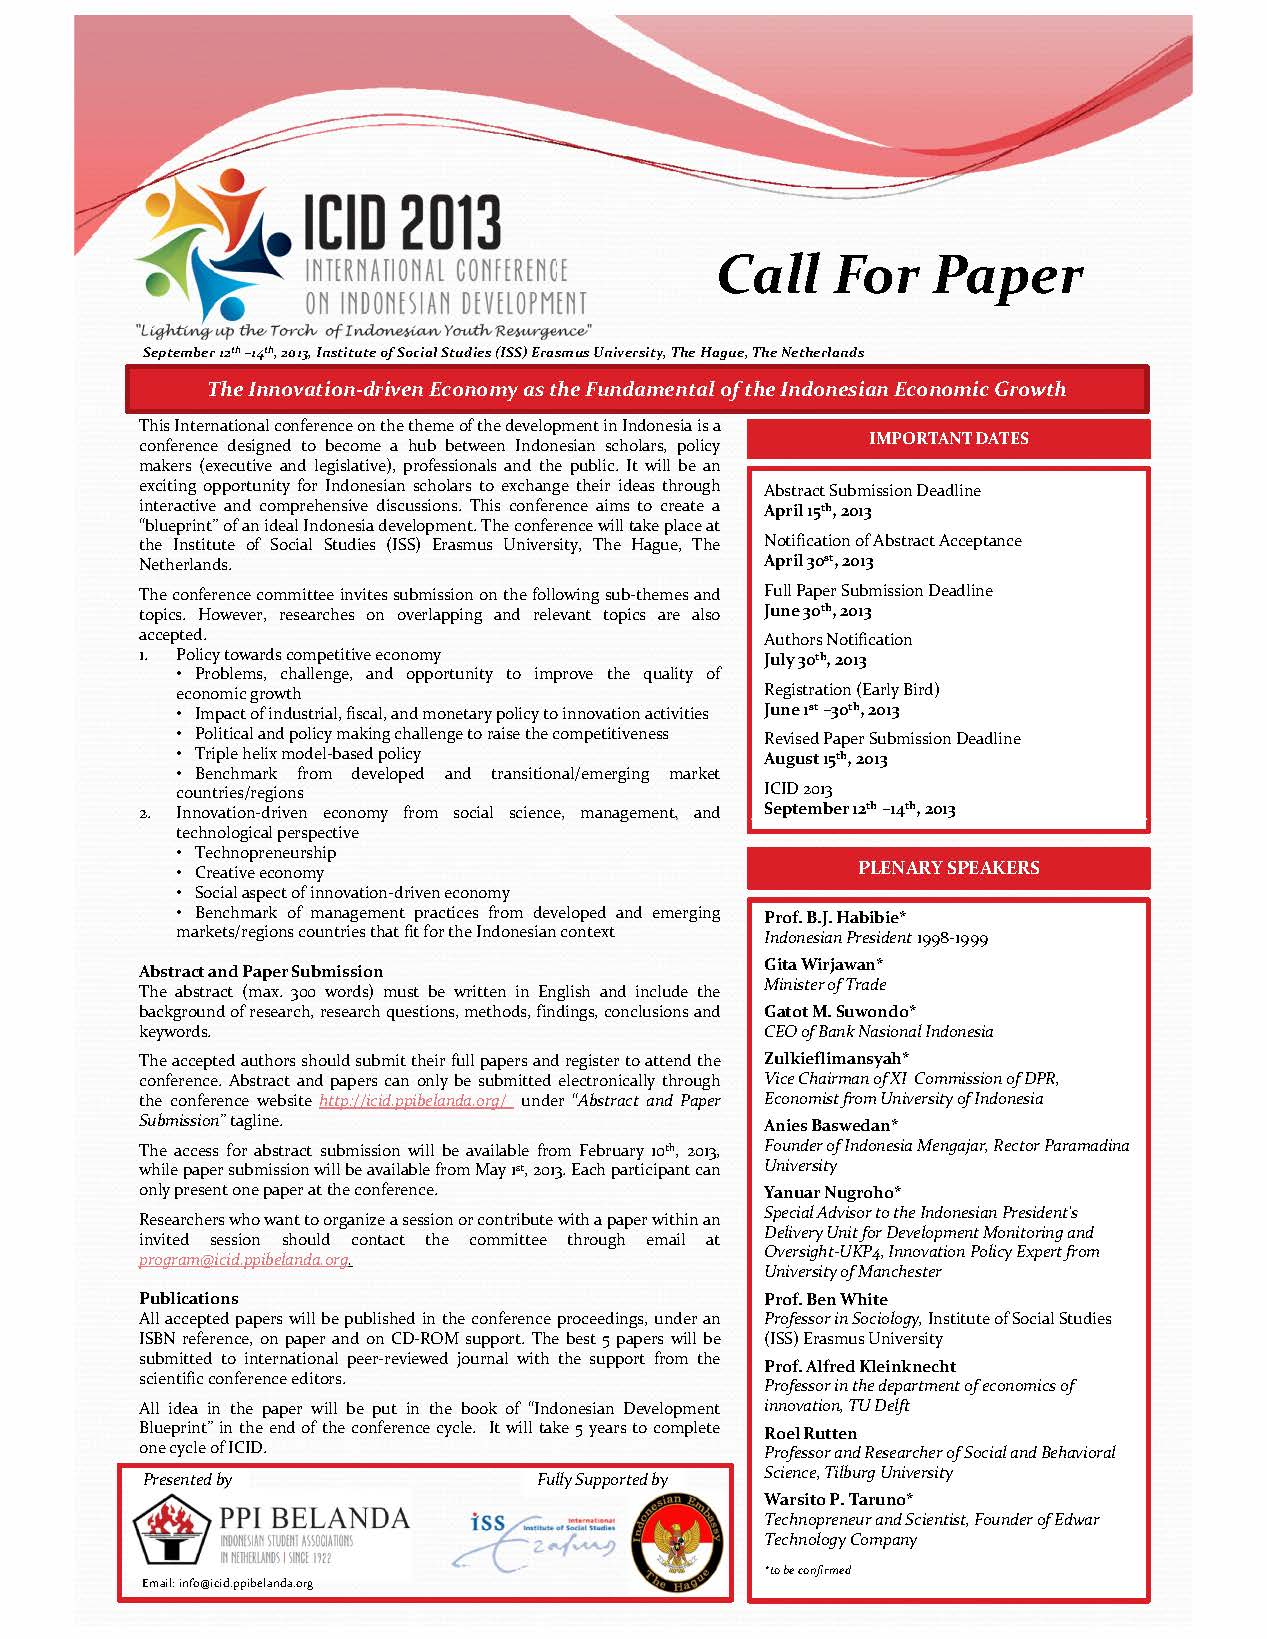 call for research papers in management journal The electronic journal of knowledge management (ejkm) provides an platform for those who are involved in the study management, development and implementation of knowledge management and intellectual capital initiatives to publish their research.